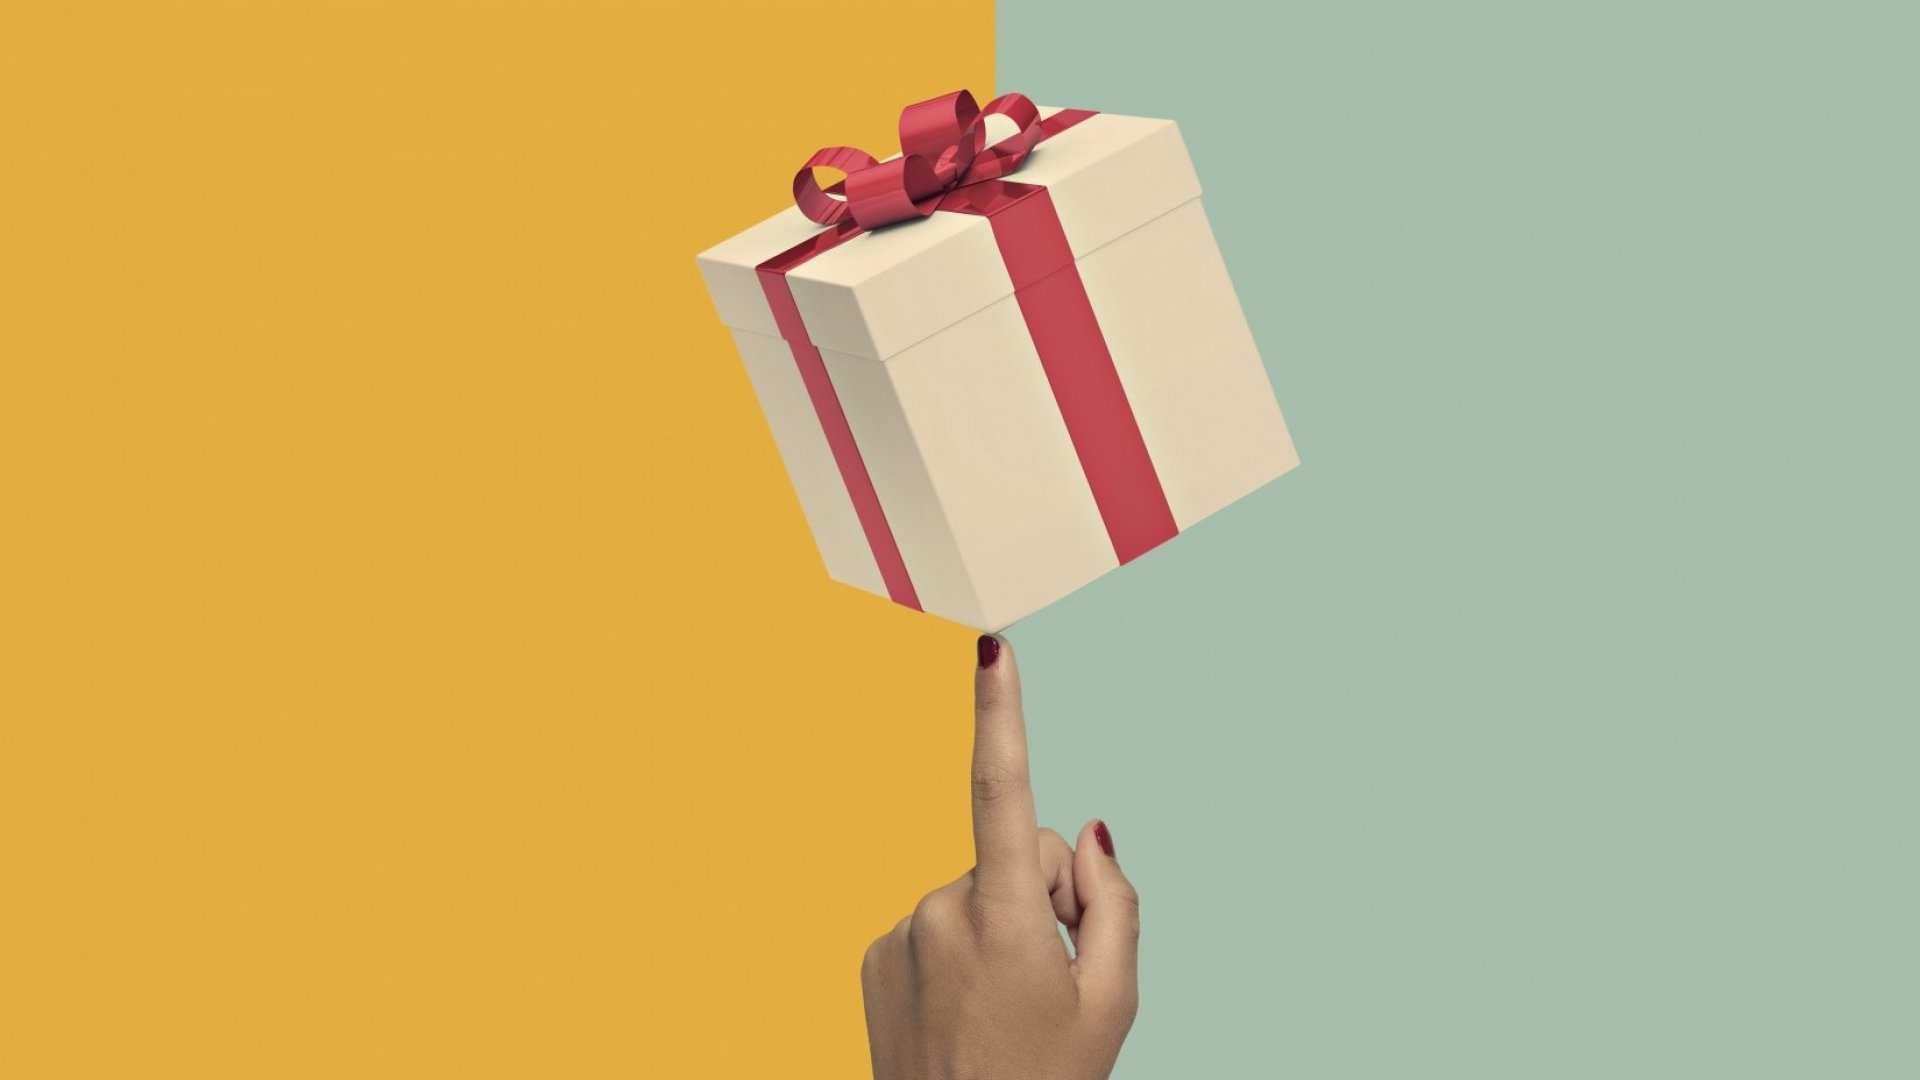 6 Free (Yet Invaluable) Holiday Gifts for Colleagues, Co-workers, and Friends